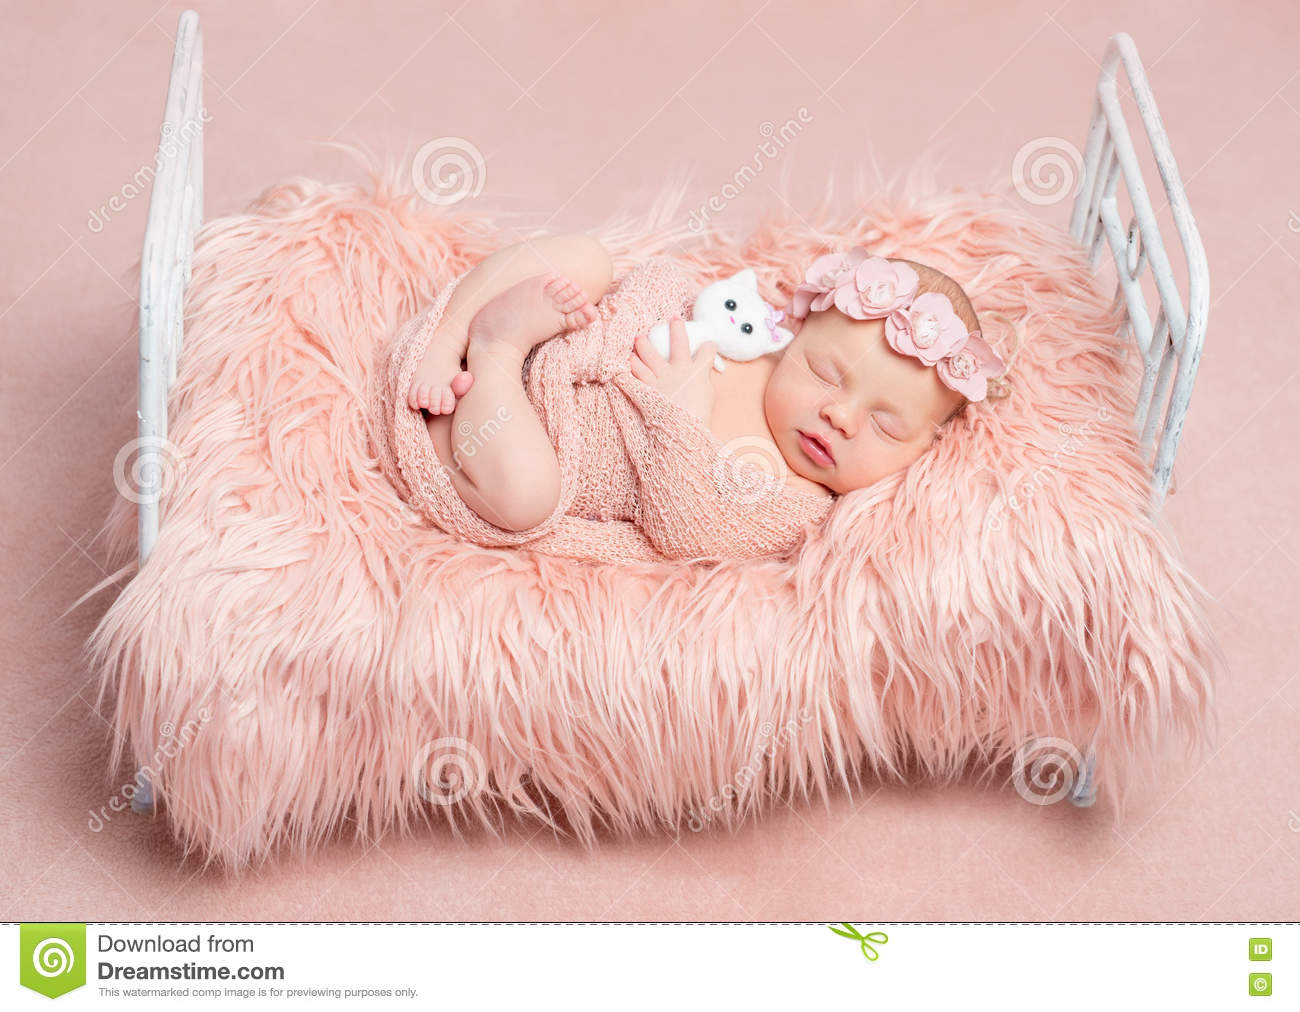 Sleeping Little Child Clasping His Hands Together Royalty